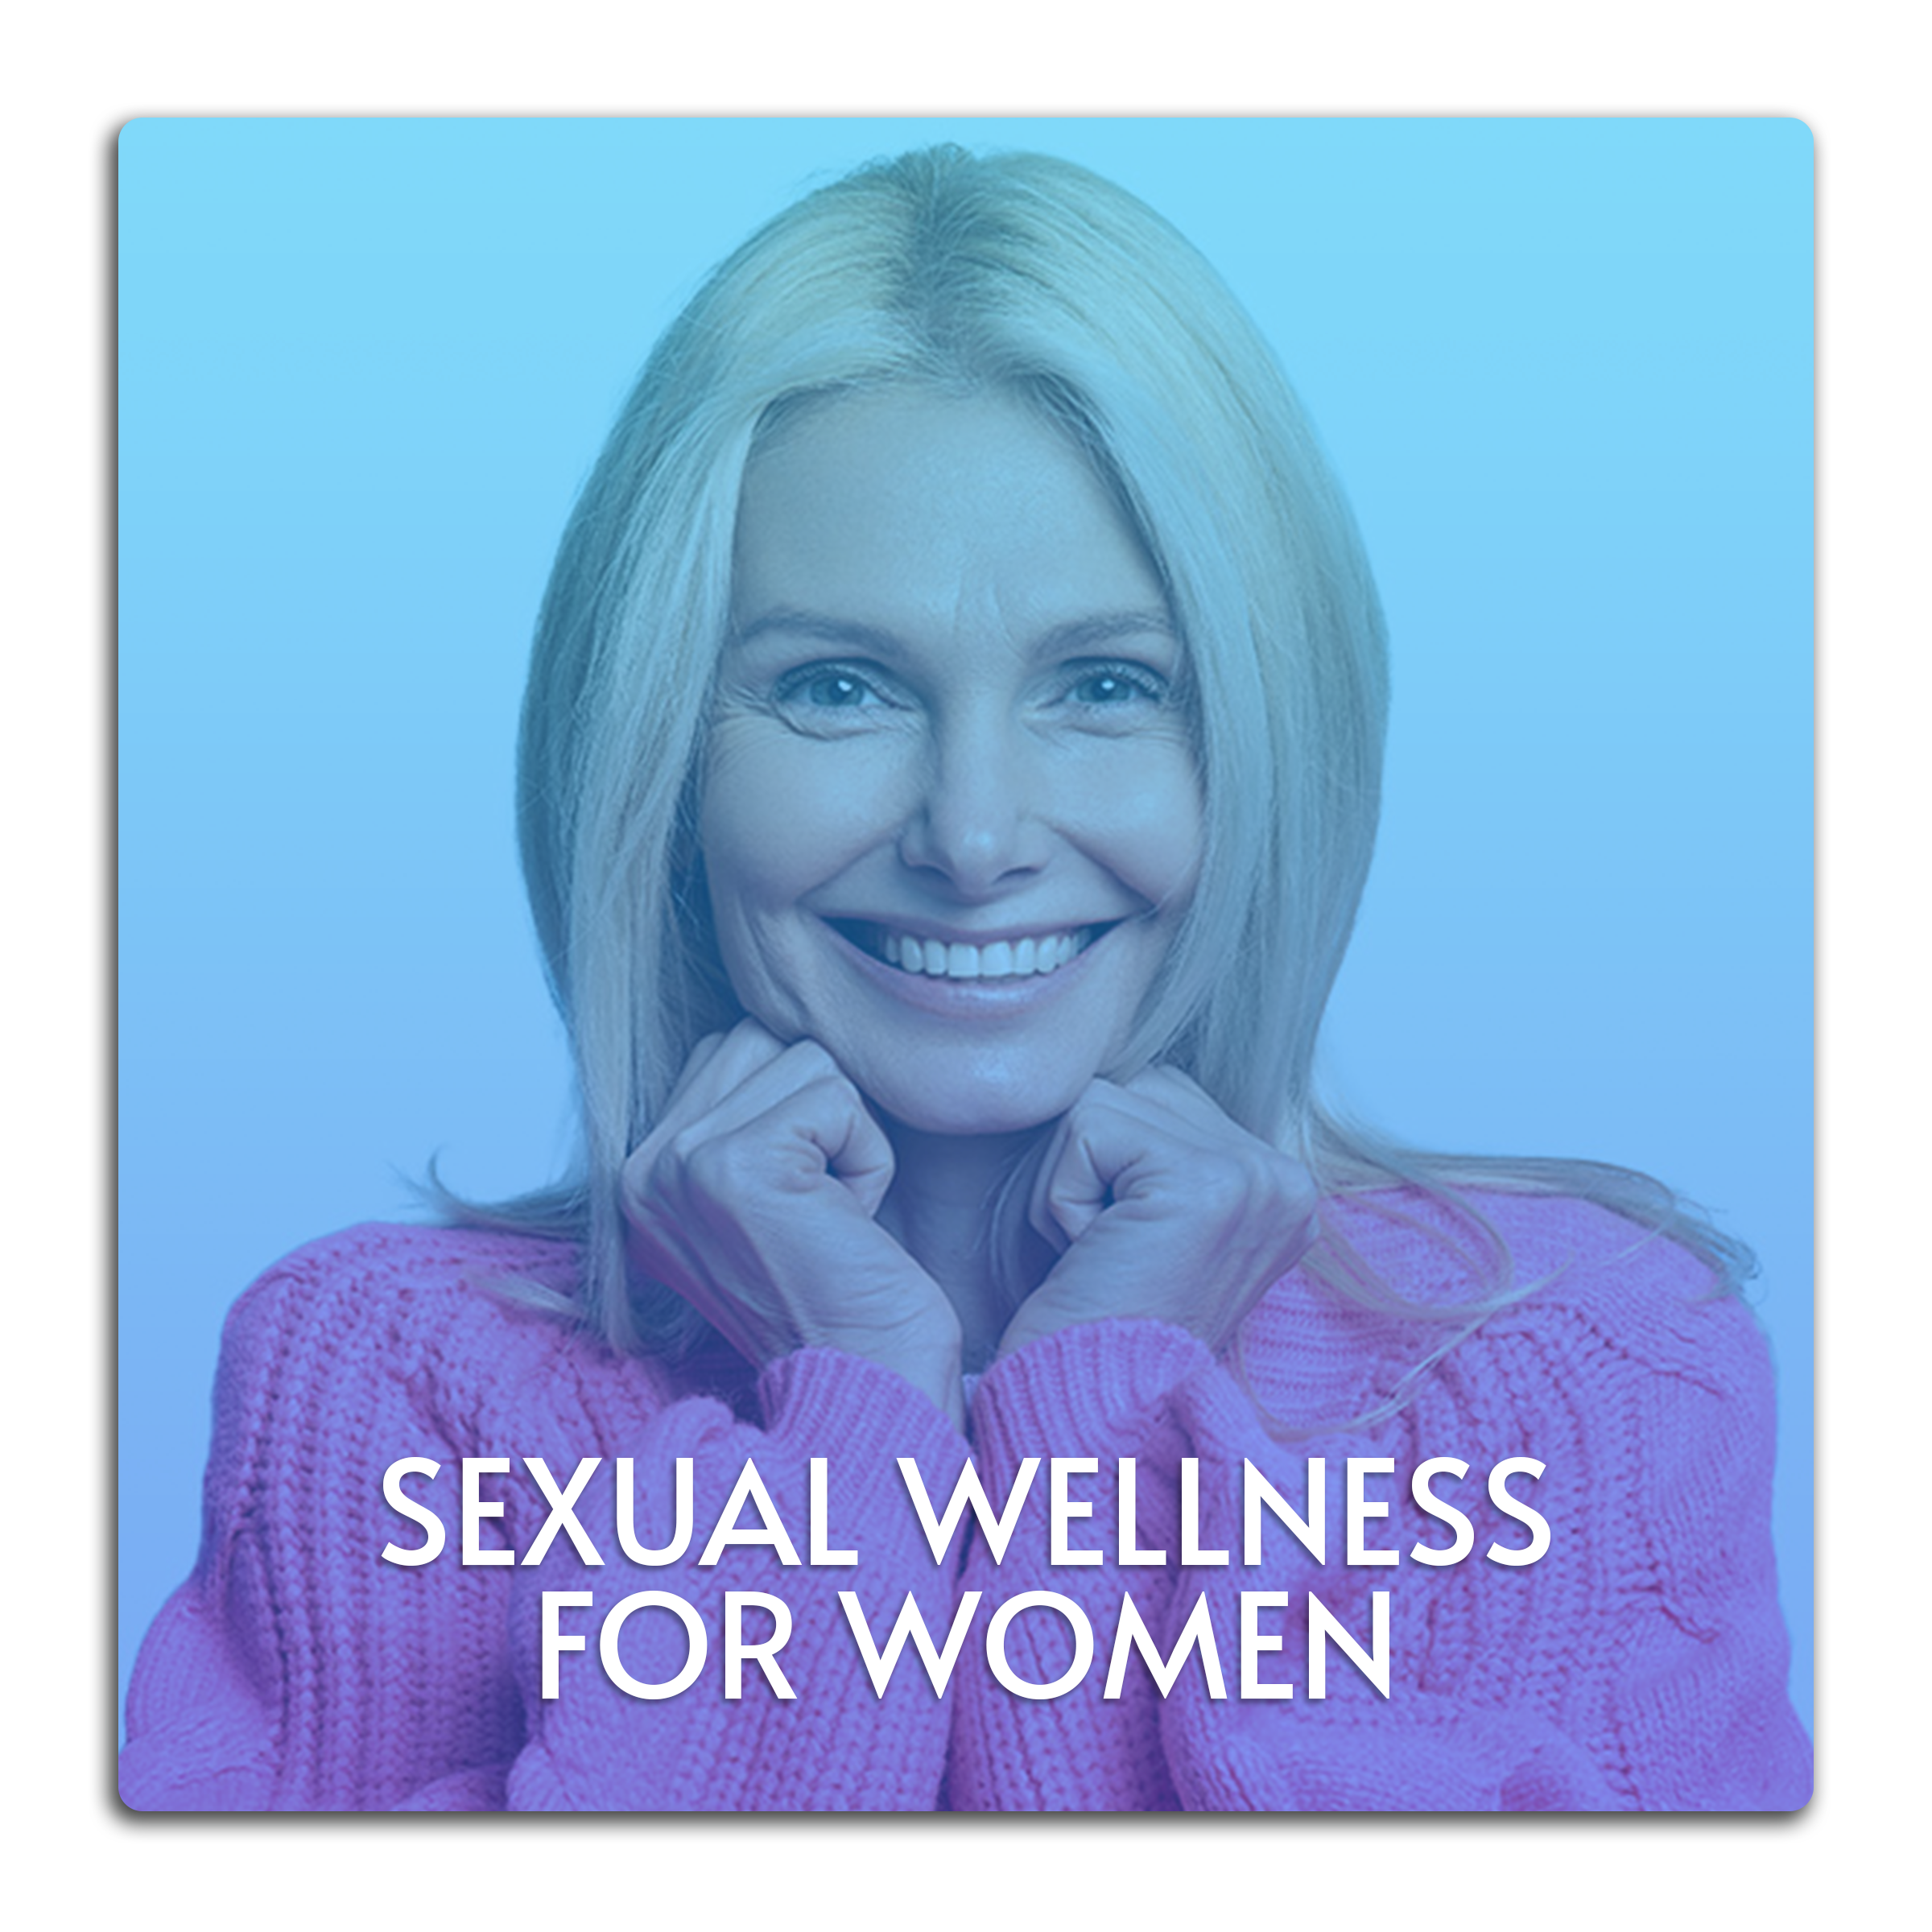 This image is a button linked to the Sexual Wellness for Women page